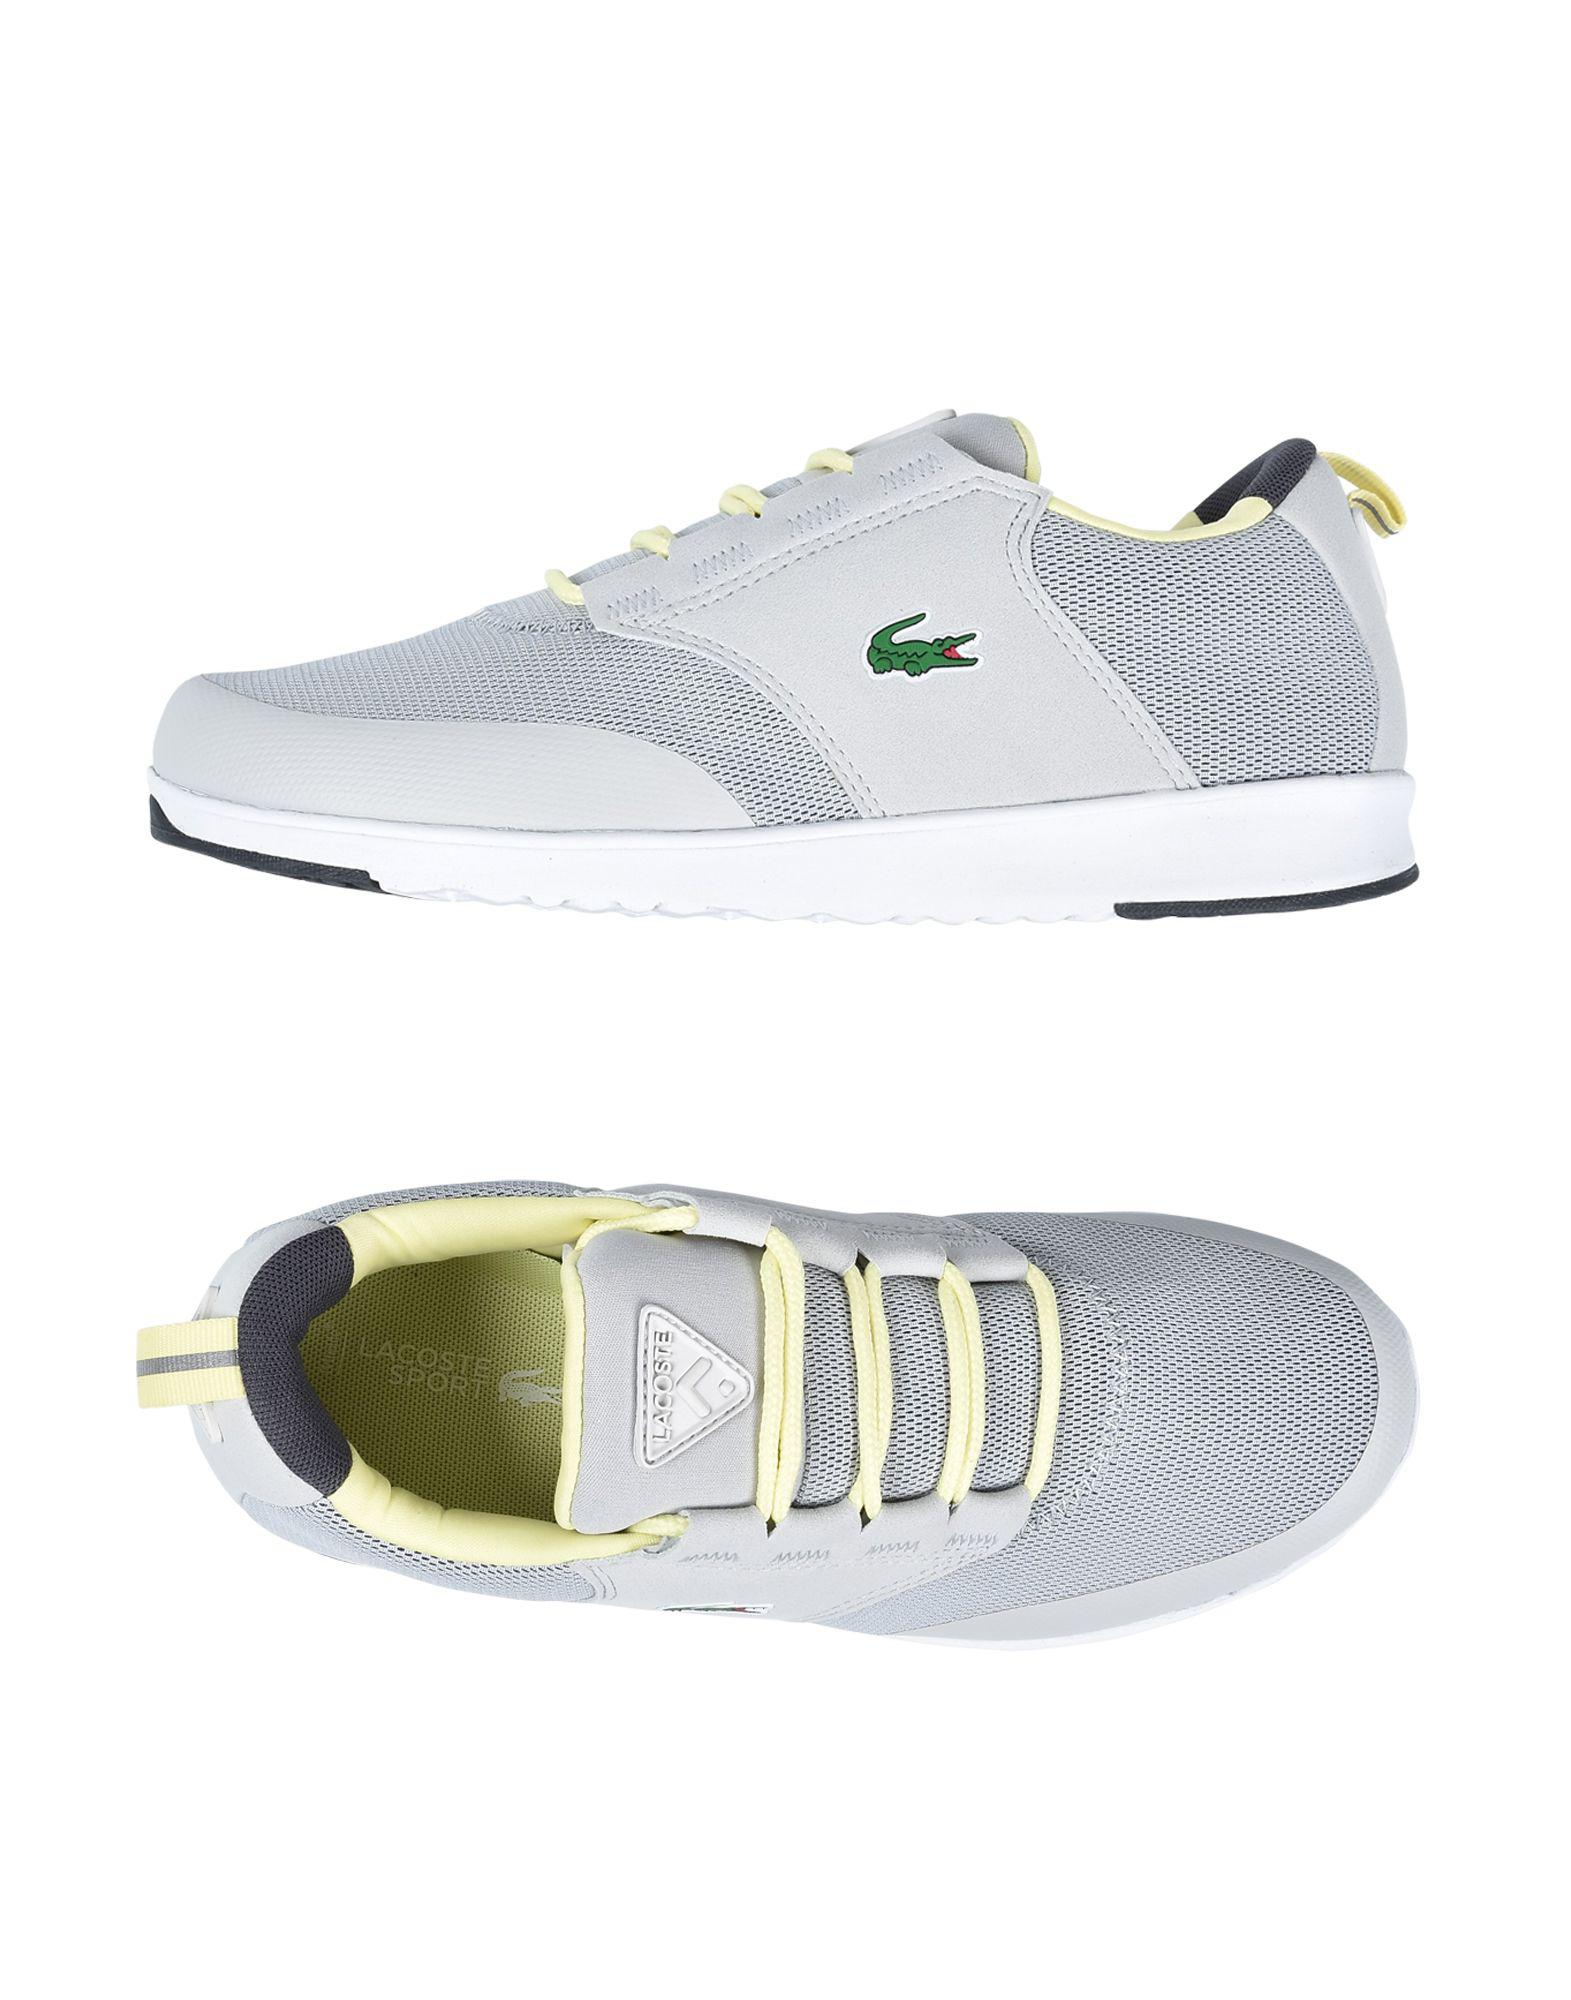 FOOTWEAR - Low-tops & sneakers Lacoste Sport oGrANv4eo